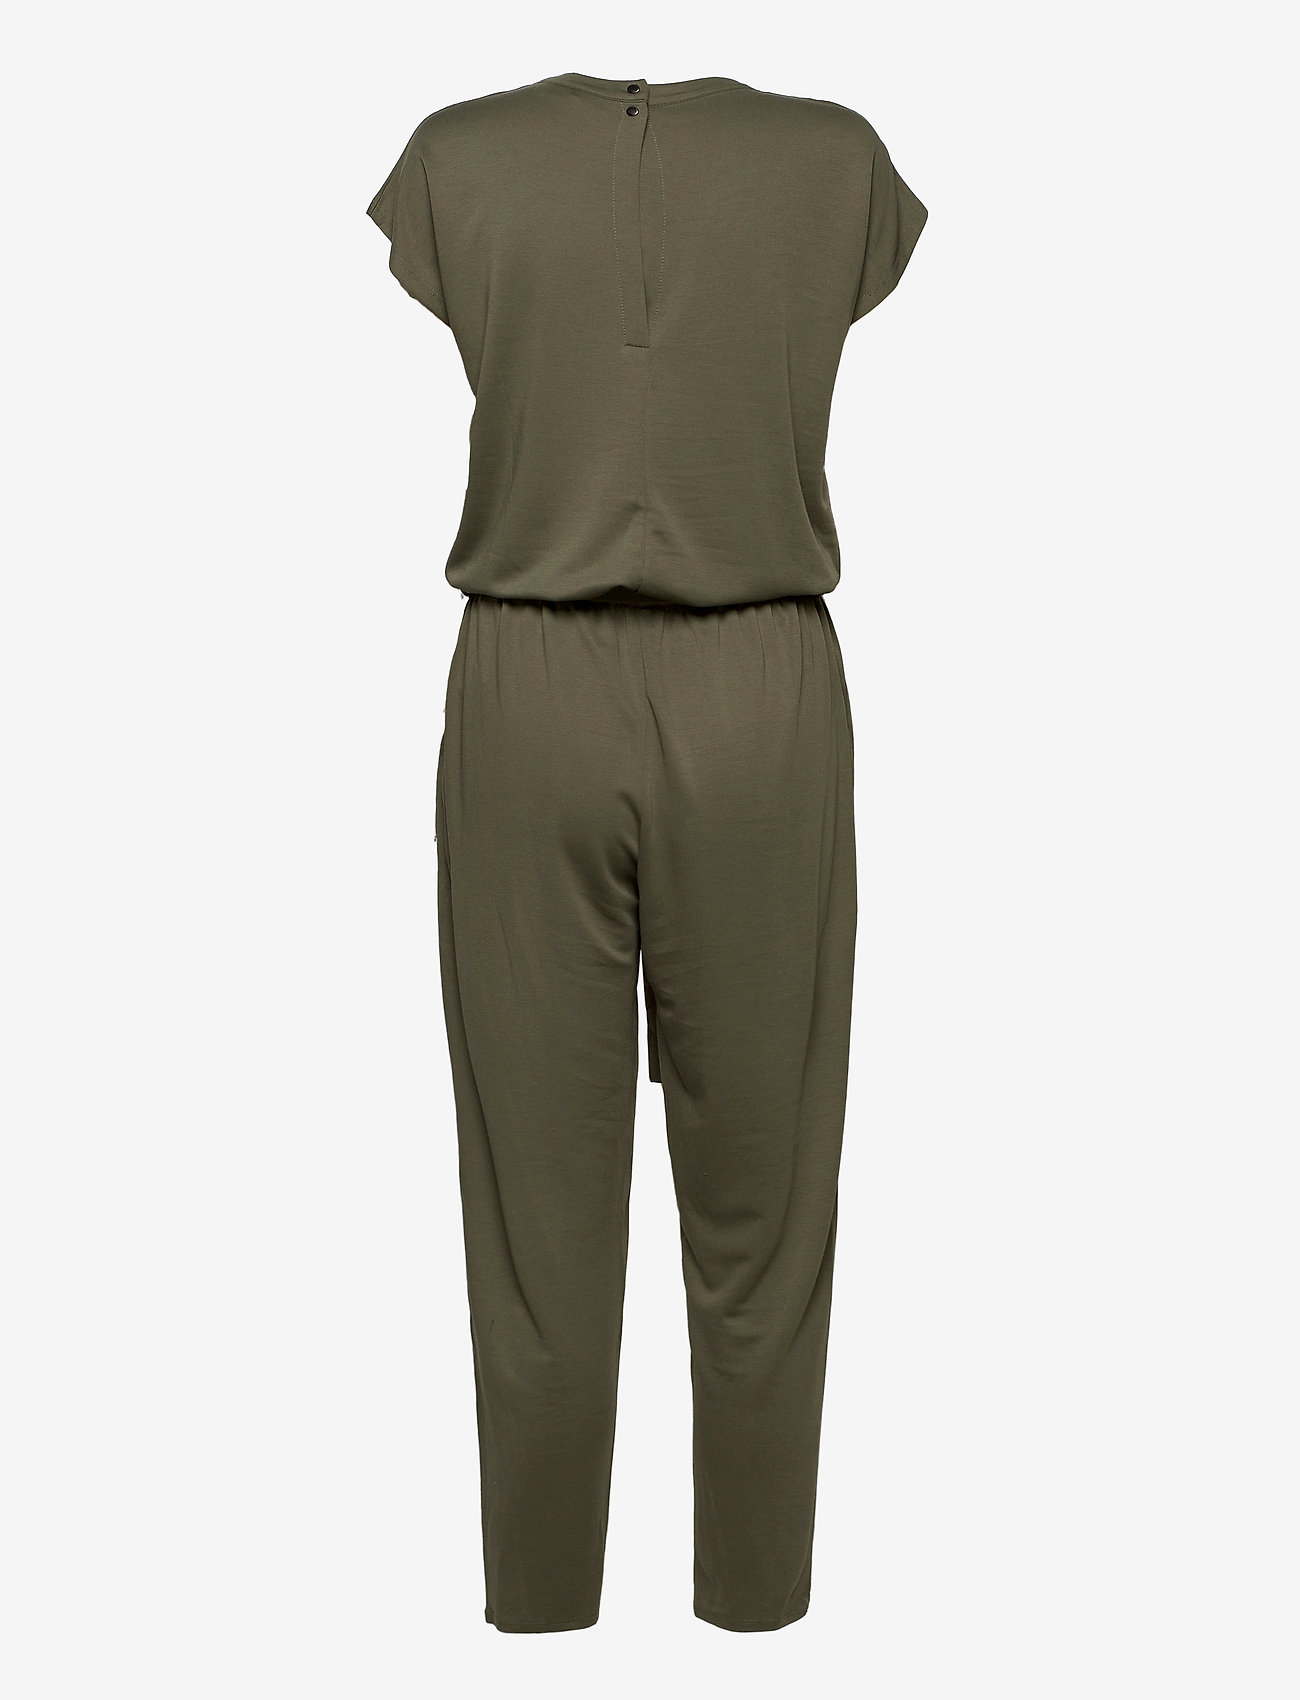 FREE/QUENT - YR-JU - jumpsuits - dusty olive - 1